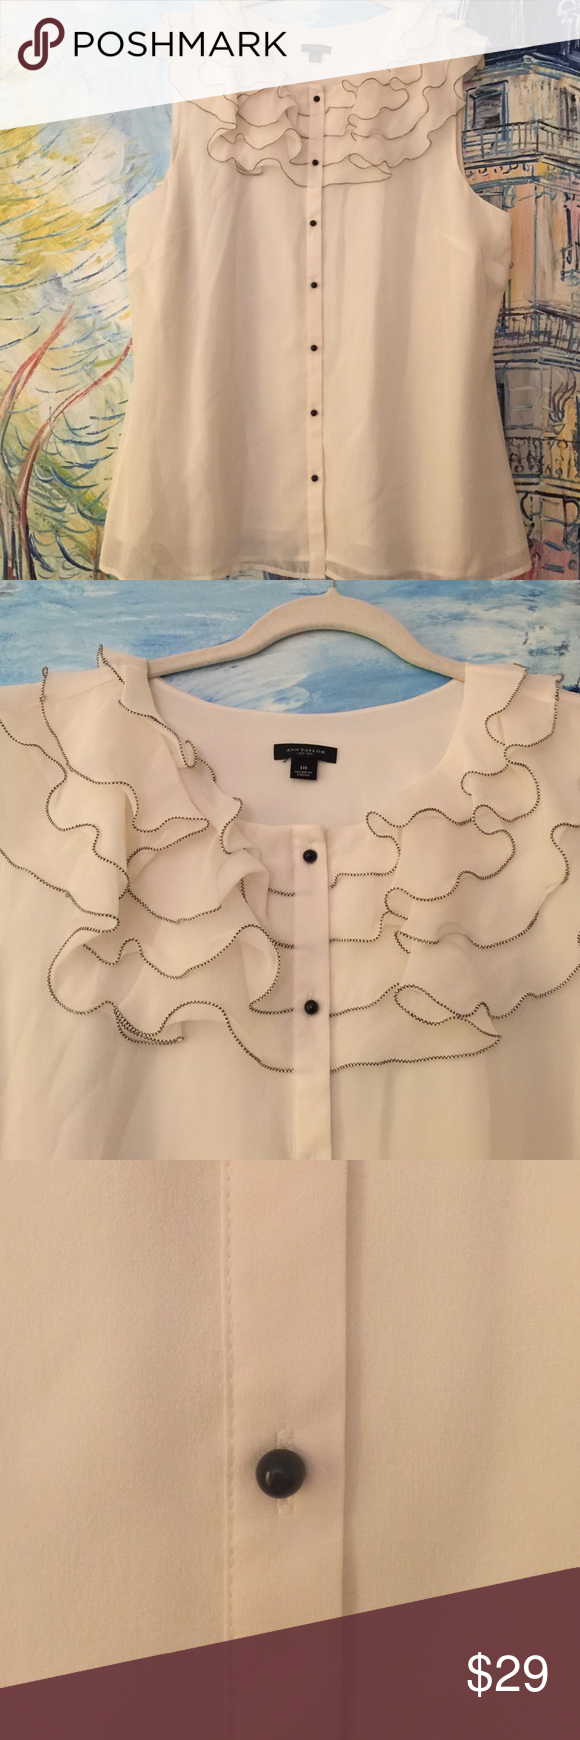 Ruffled Top Sleeveless Blouse Ruffled Top Sleeveless Blouse; sheer with lining underneath; 100% Silk. Ann Taylor Tops Blouses